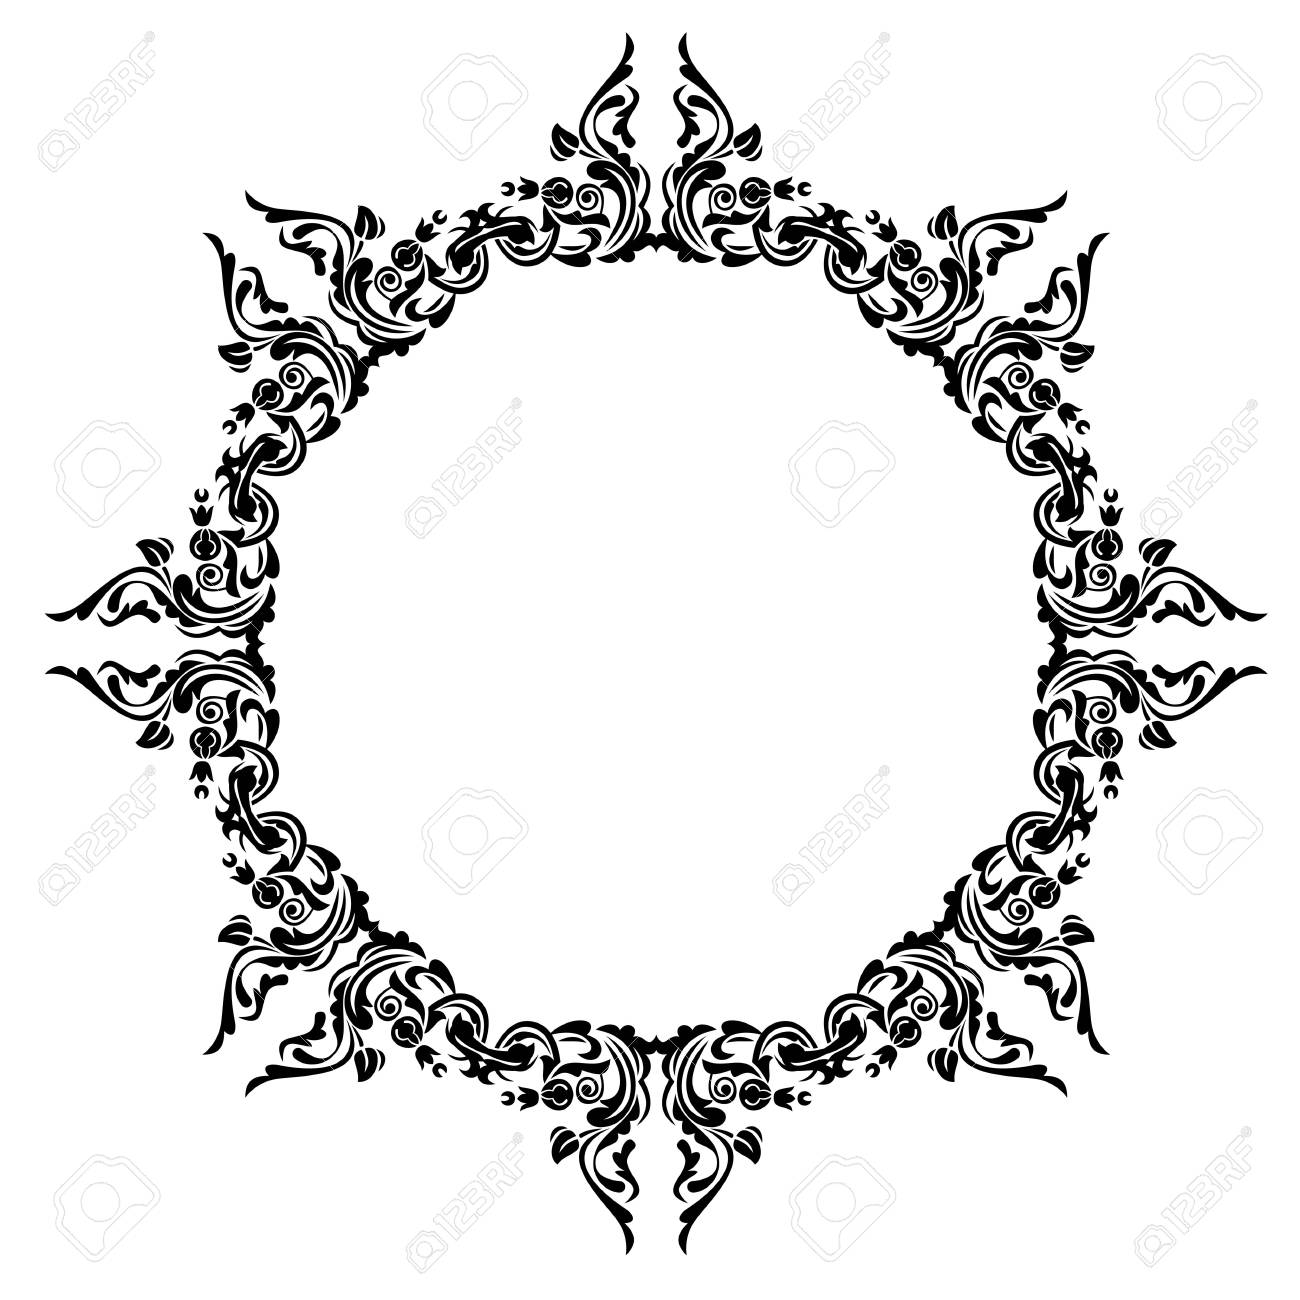 Antique Oval Frame Royalty Free Cliparts, Vectors, And Stock ...